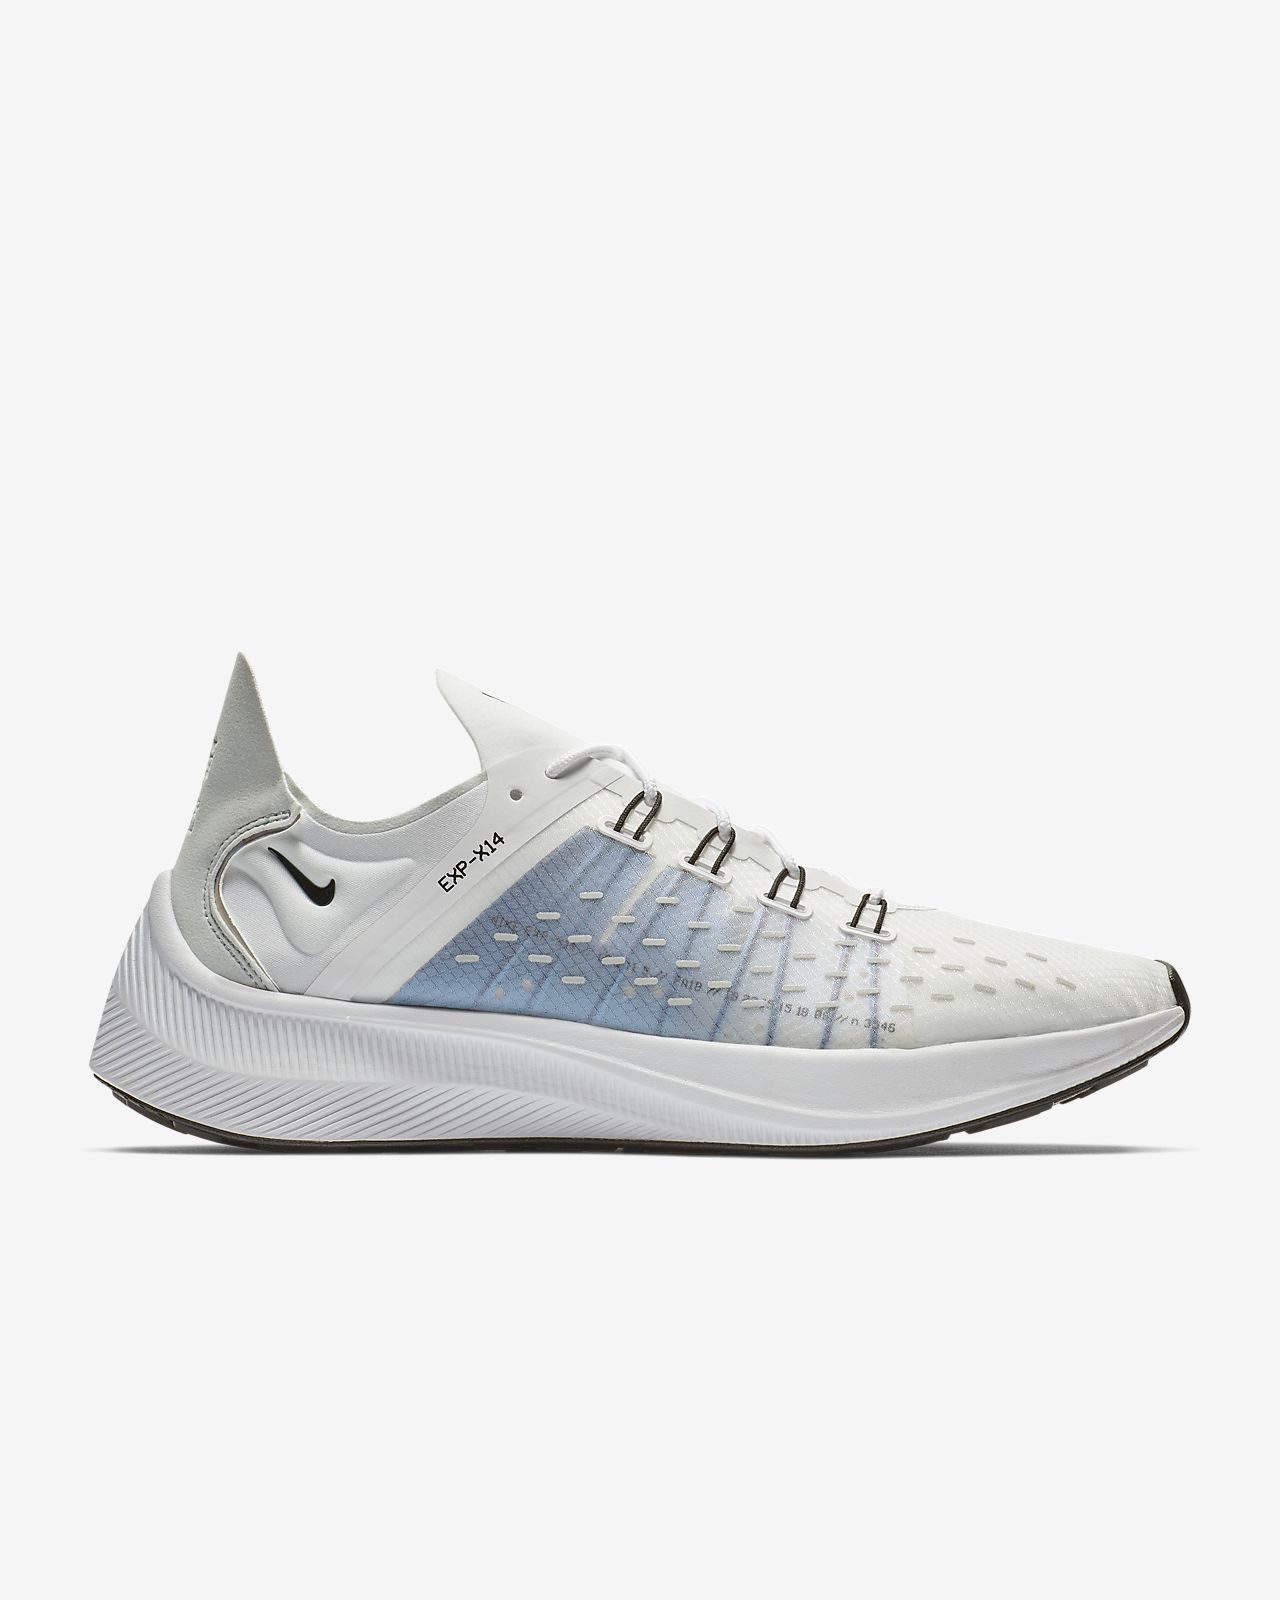 Nike EXP-X14 Y2K Men's Shoe